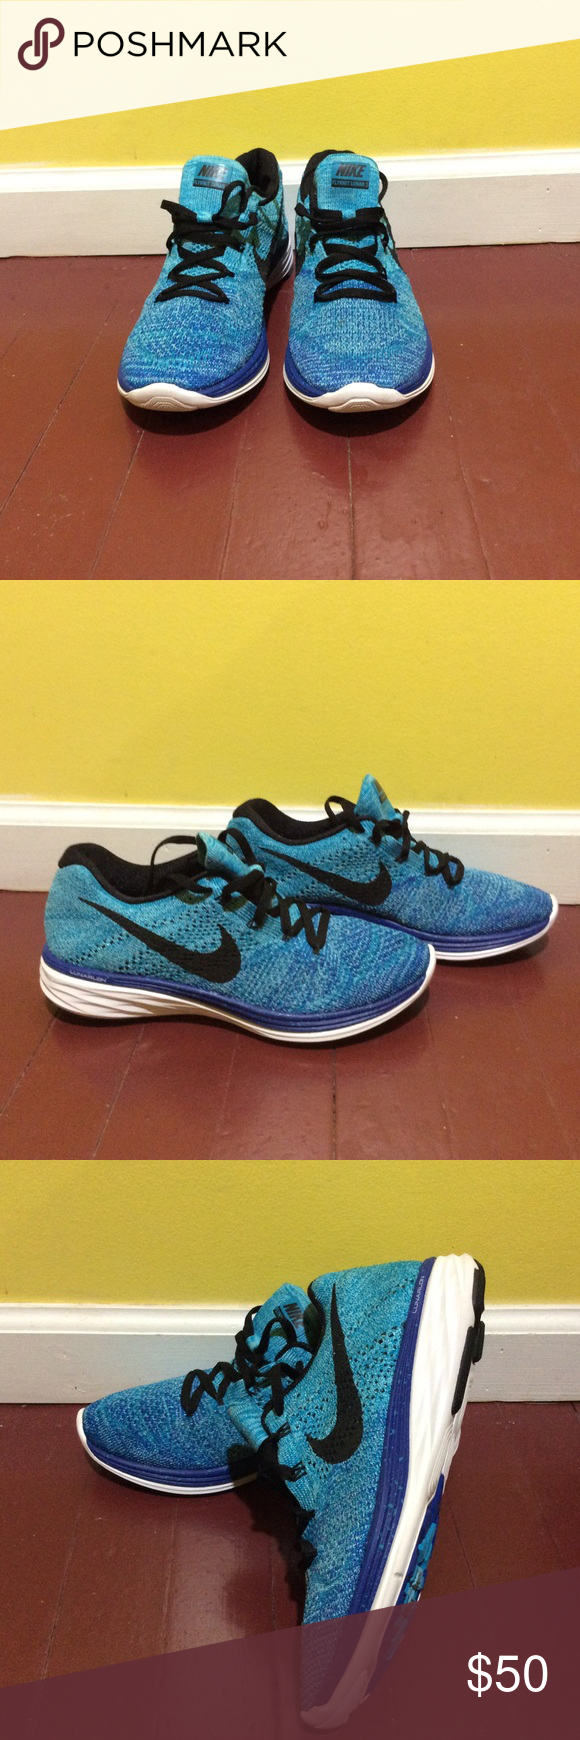 new concept 0abb5 42424 ... inexpensive nike flyknit lunar 3 womens sneaker turquoise the nike  flyknit lunar 3 womens running shoe